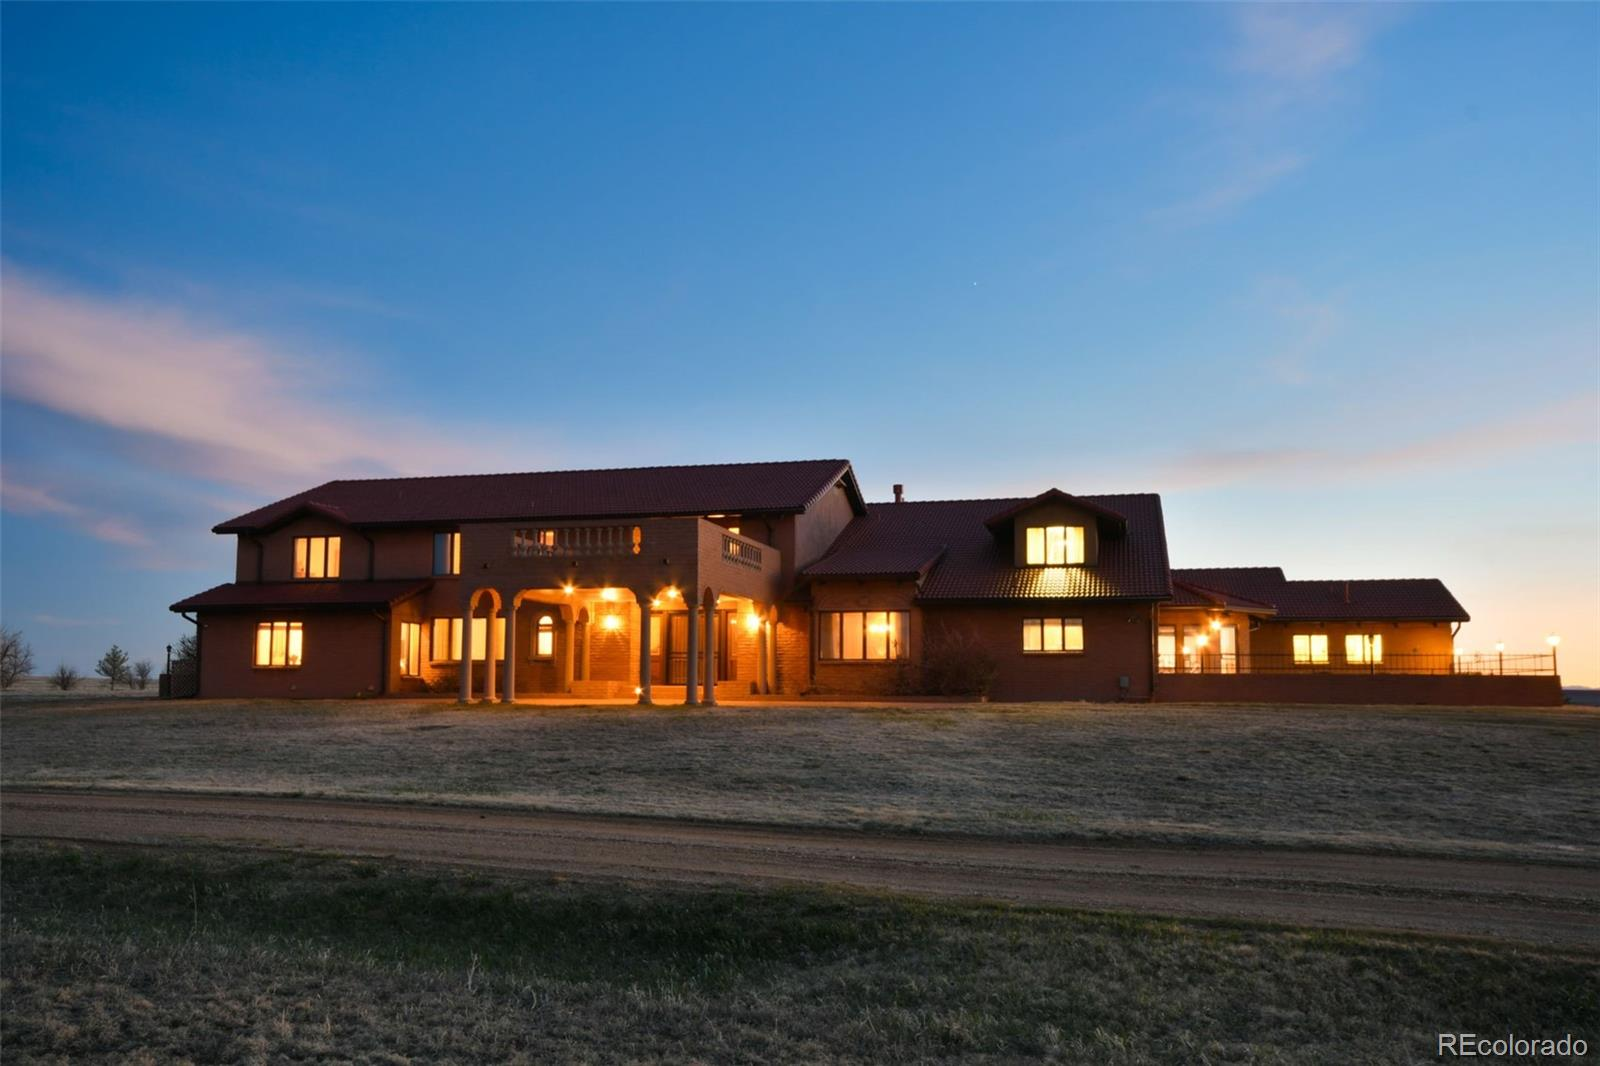 The estate you've been looking for w/ a grand main home, smaller second residence, privacy, & good pastures on 185 acres of prime Colorado ranching property*Sitting on the highest point of the property, you're immediately drawn to the architecture & grandeur of this custom built estate*This home is built solid & all the little details are there*Just some of the highlights are: An indoor pool; elevator; an 8 column porte-cochere entry; curved staircase; 17' ceilings in the great room w/floor to ceiling windows to watch the amazing sunsets & mountain views; exquisite oak cabinets, built-ins, & crown molding throughout the home made from oak milled on the property; 8' wood paneled sliding doors entering the great room; a stunning wood burning fireplace w/ 6' high mantle; a loft overlooking the great room*Truly an entertainers dream- a wet bar area, an elegant spacious formal dining room, a kitchen which boasts double ovens, a 6-burner stove, 2 pantries, eating area & an additional breakfast nook w/beamed ceilings*Several private court yards, a green house & separate fenced garden area*Large bedrooms w/private baths & walk-in closets*A soundproof bedroom in the massive finished basement*Mud room w/hat & boot racks*Laundry room w/utility sink, cabinets & built in ironing board*An oversized 4 car attached finished garage w/4 dog kennels, dog washing station, & 2 gas heaters*Sitting on fenced pasture, this land can be used in a multitude of ways*Most recently used as a successful cattle ranch*Enjoy hunting deer, antelope, & game birds on the property as well*The original farm house built in 1943 remains on the property & is currently being rented out*Several additional outbuildings included-another 4 car garage, tool sheds, loafing sheds & piped corrals*This is a beautiful property situated on rolling hills & grasslands* Must see in person to appreciate all the custom details.